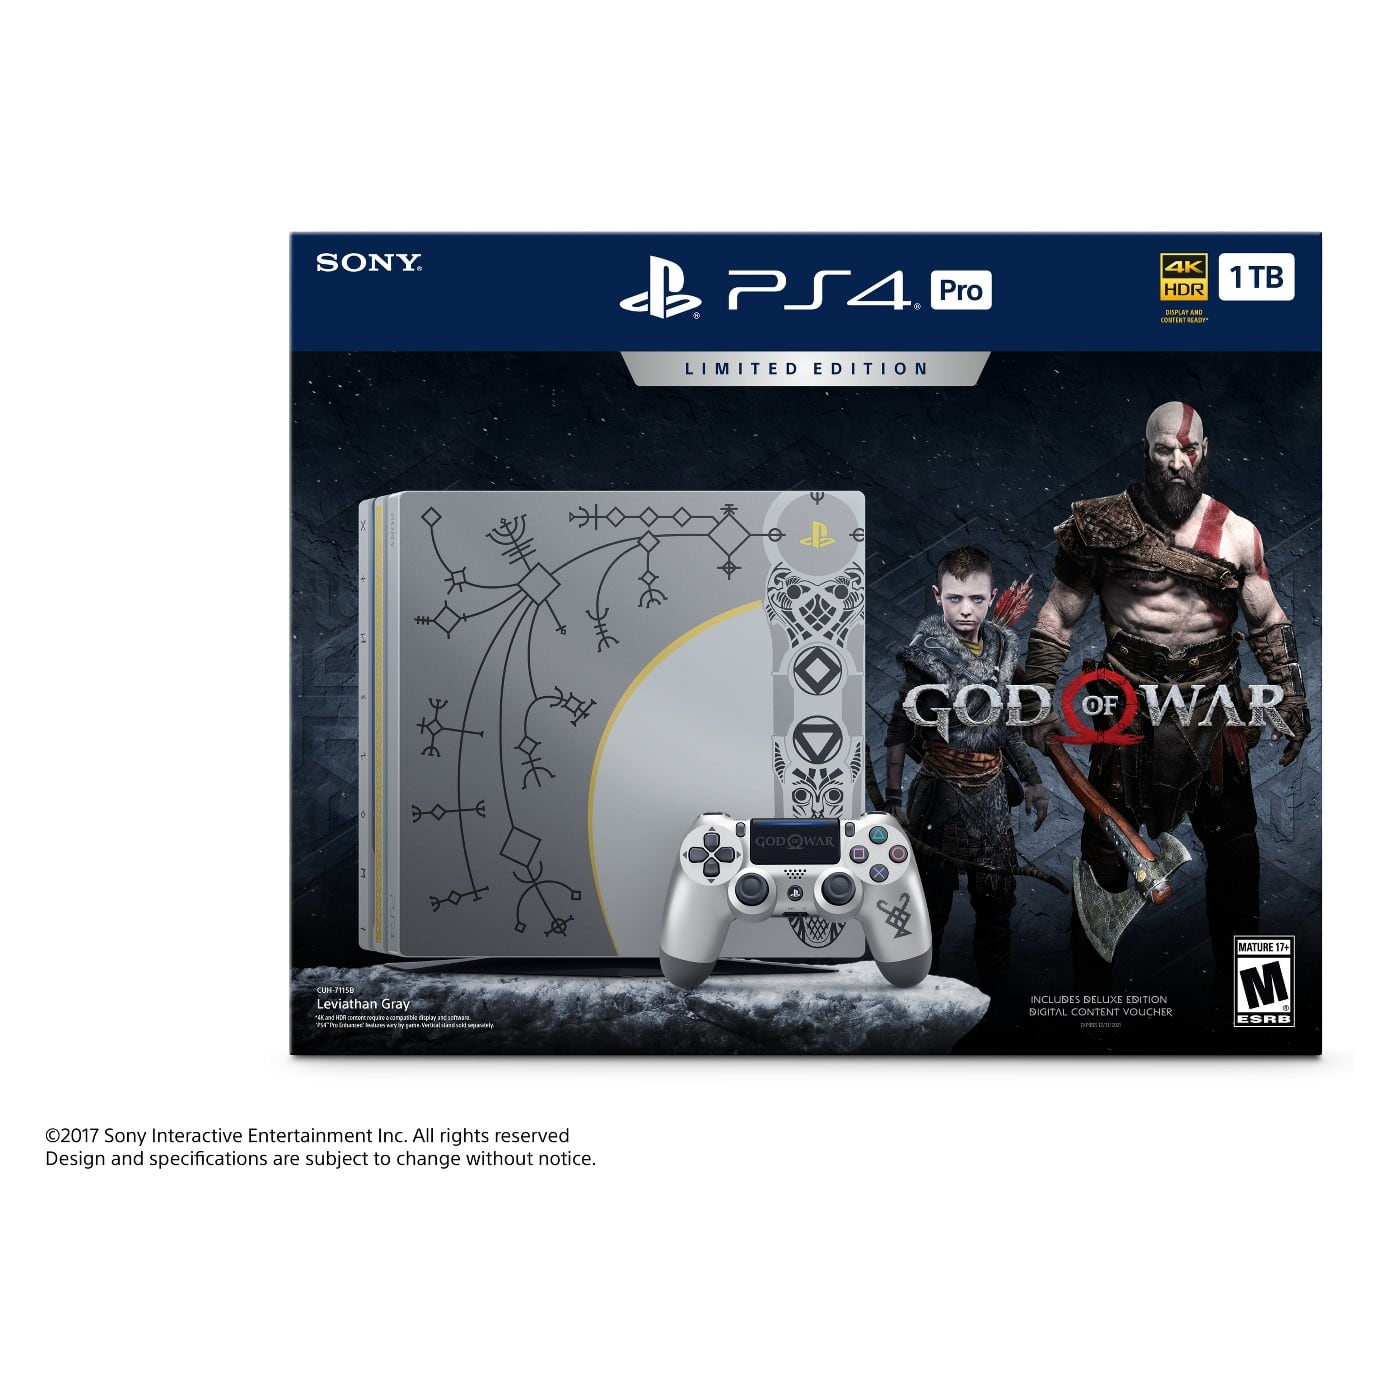 PS4 Pro 1TB God of War Bundle in Stock at Target $399.99